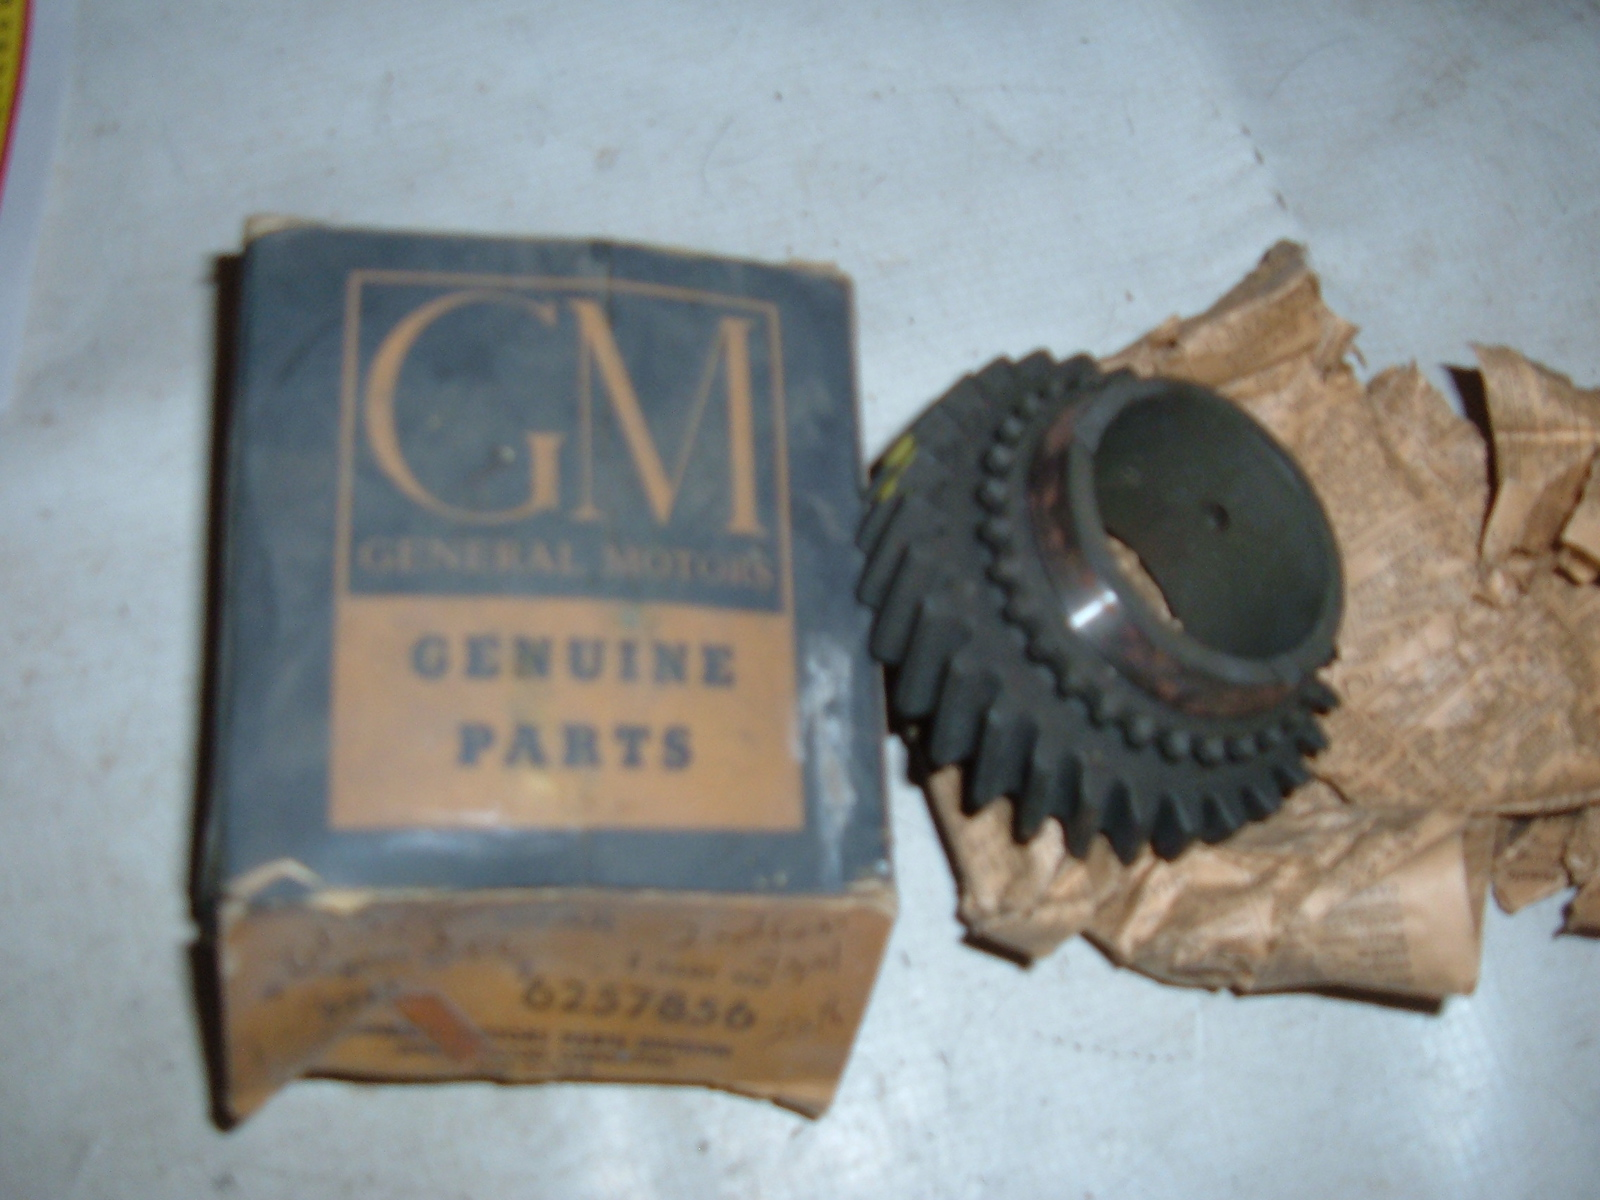 1961 62 63 chevrolet corvair 4 speed transmission 2 nd gear nos gm # 6257856